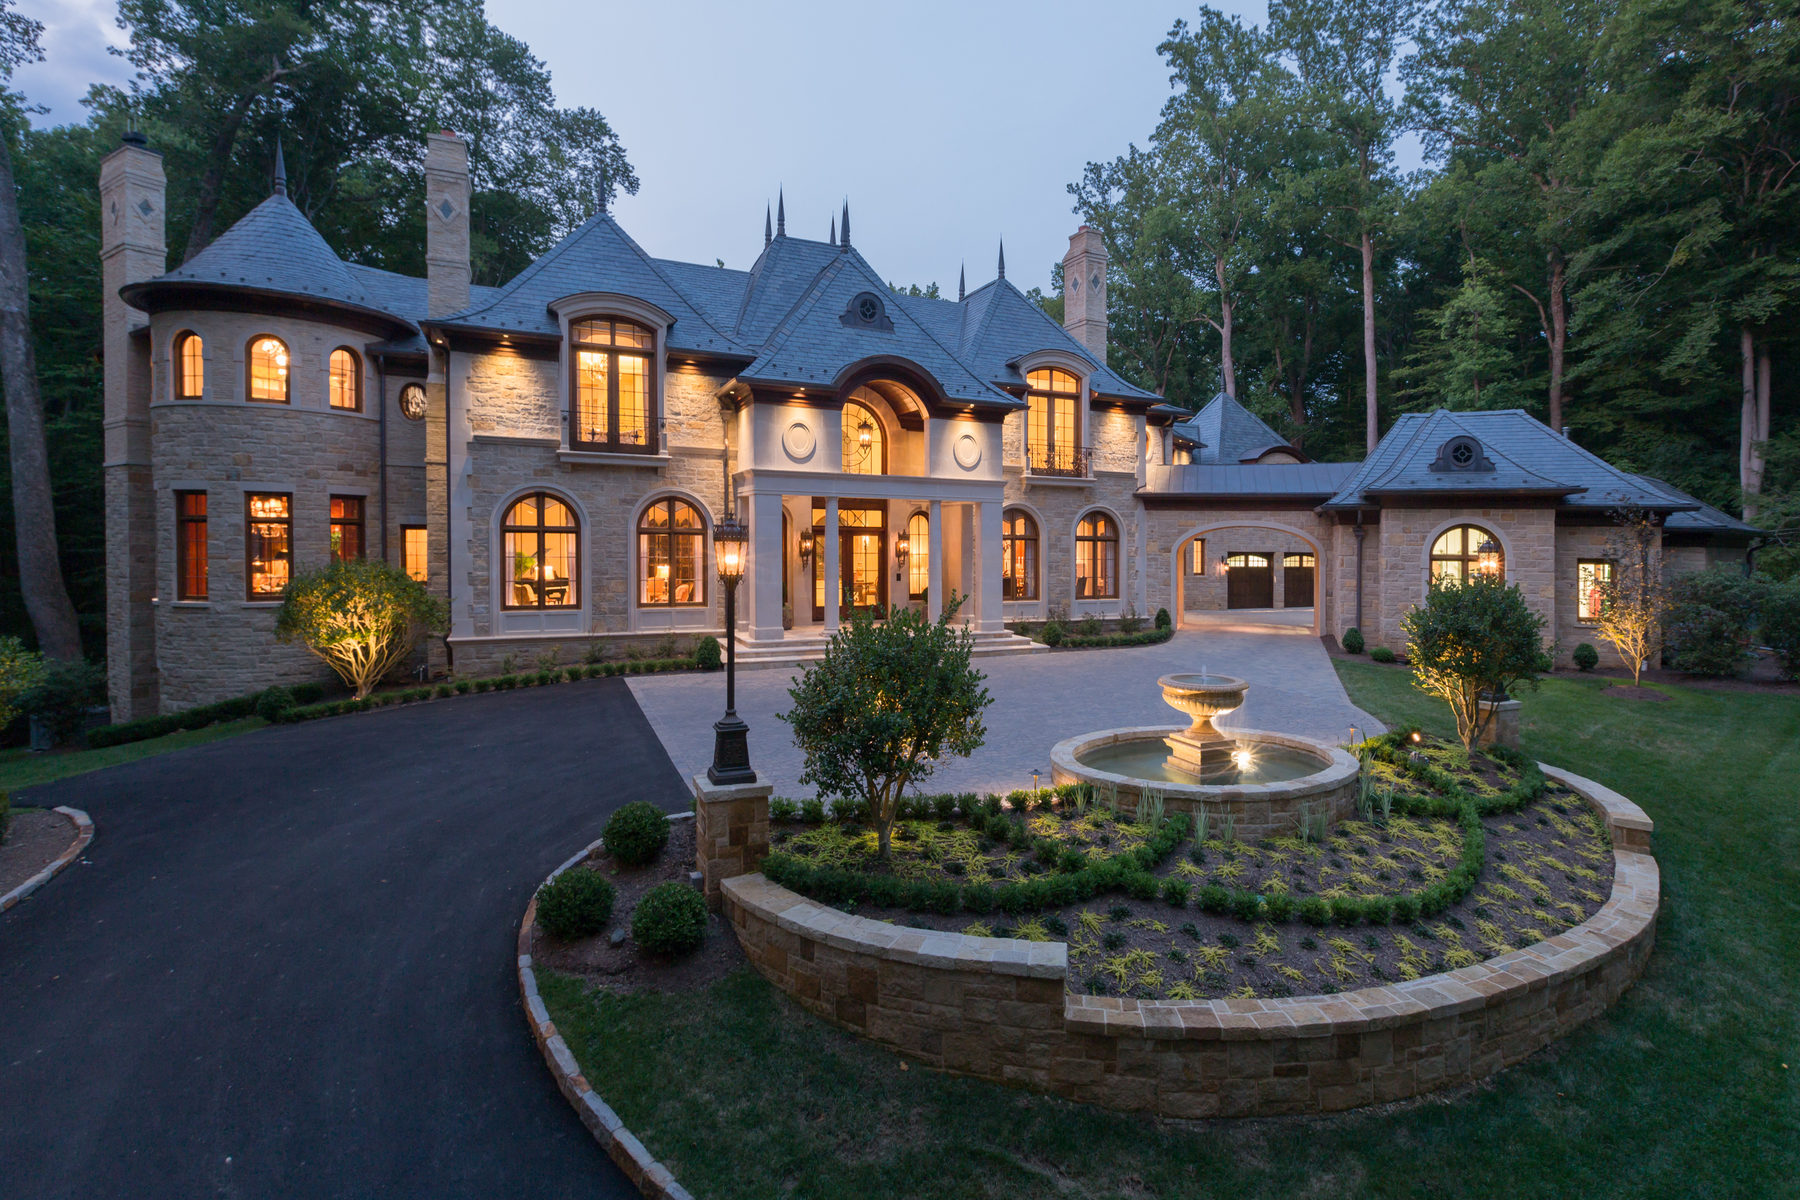 Casa Unifamiliar por un Venta en 801 Turkey Run Rd., McLean McLean, Virginia 22101 Estados Unidos